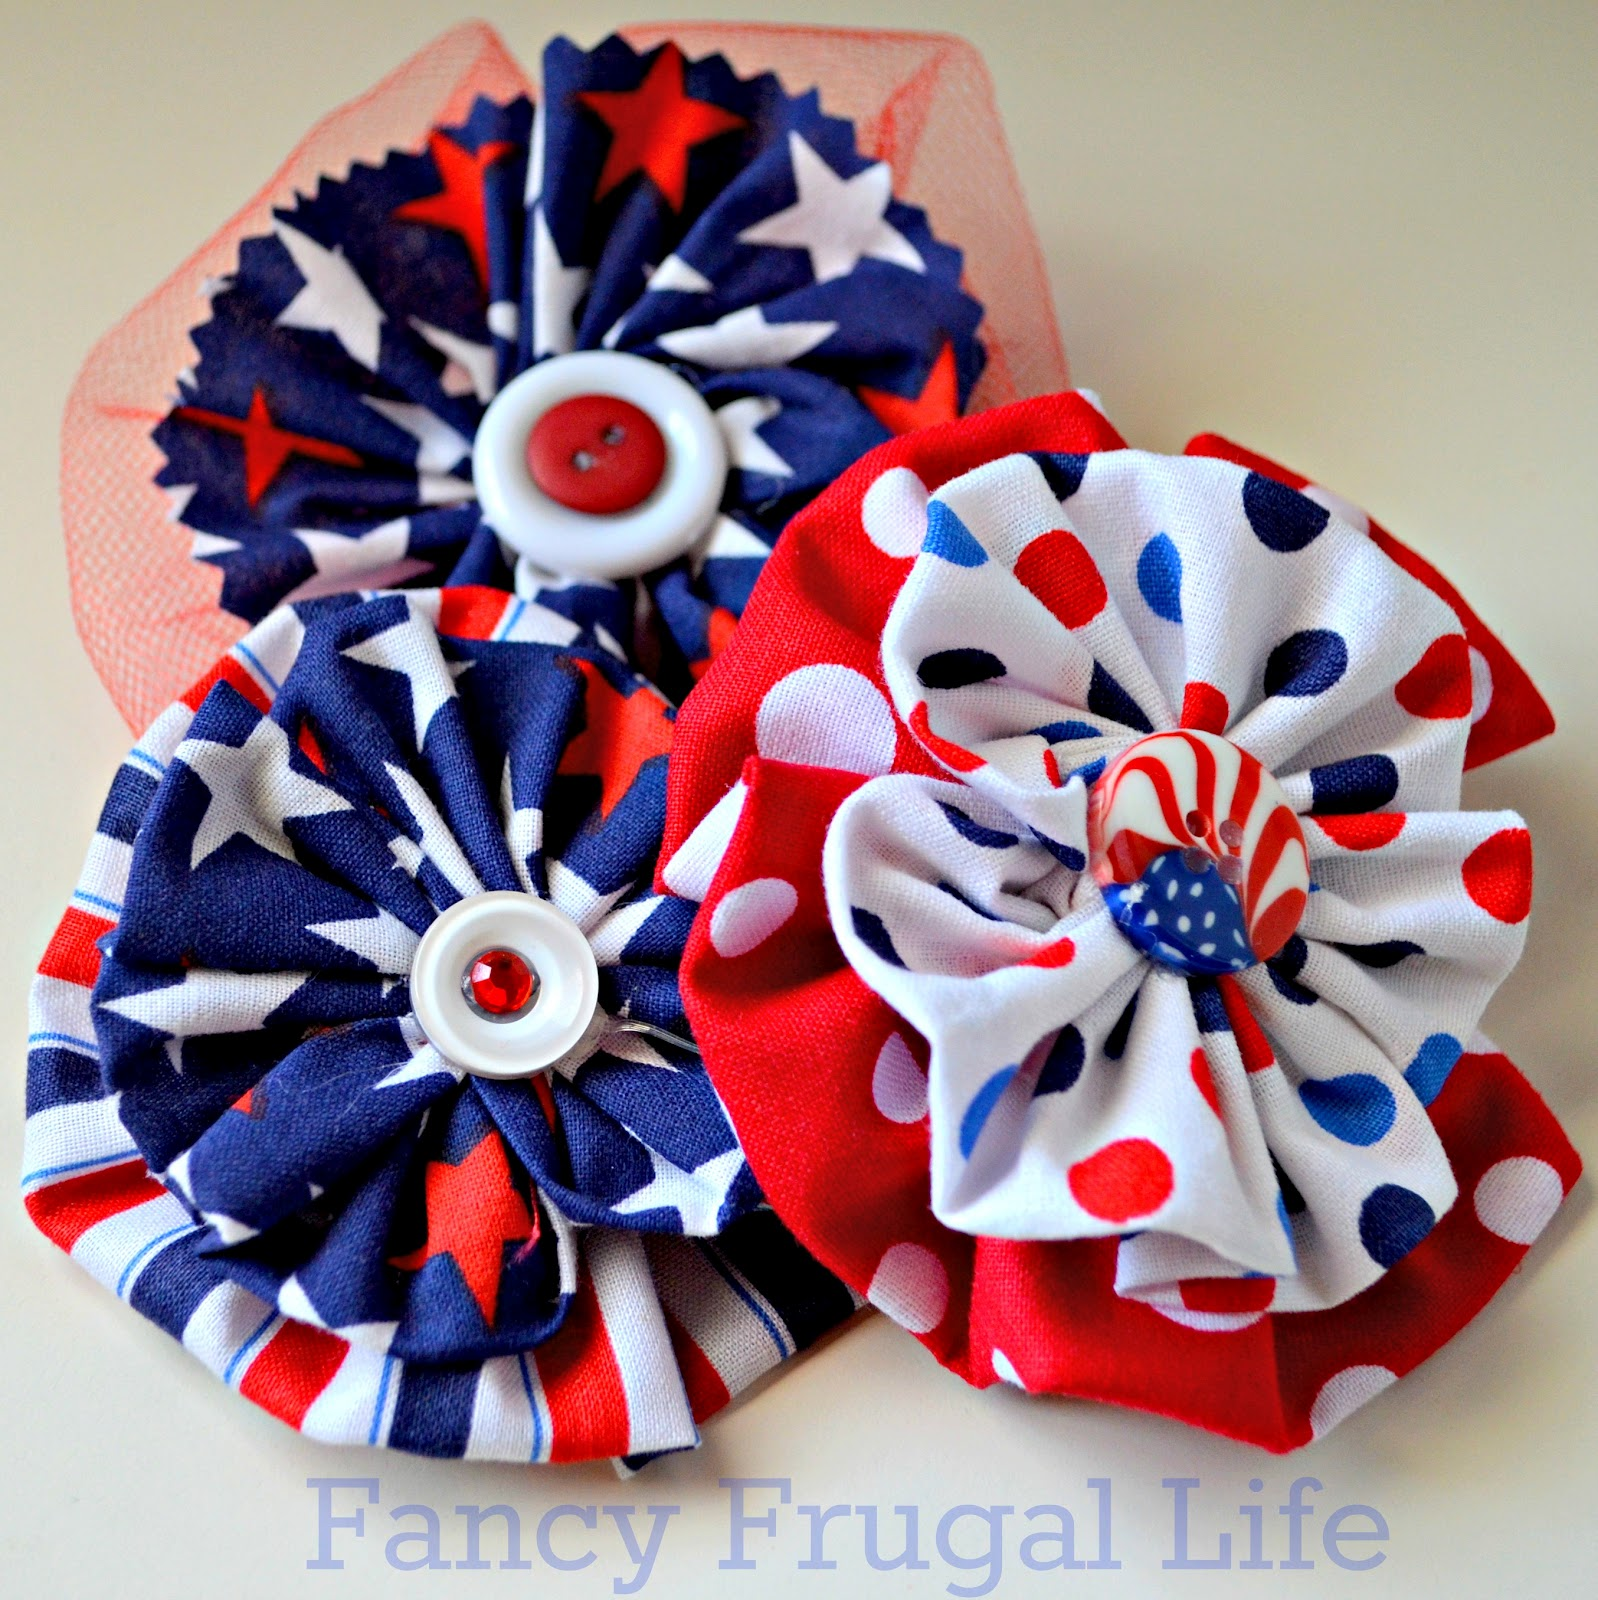 a6ba9e924763d I had some left over patriotic fabric so I played around in the craft  closet last night and came up with these to wear as pins or hair clips.